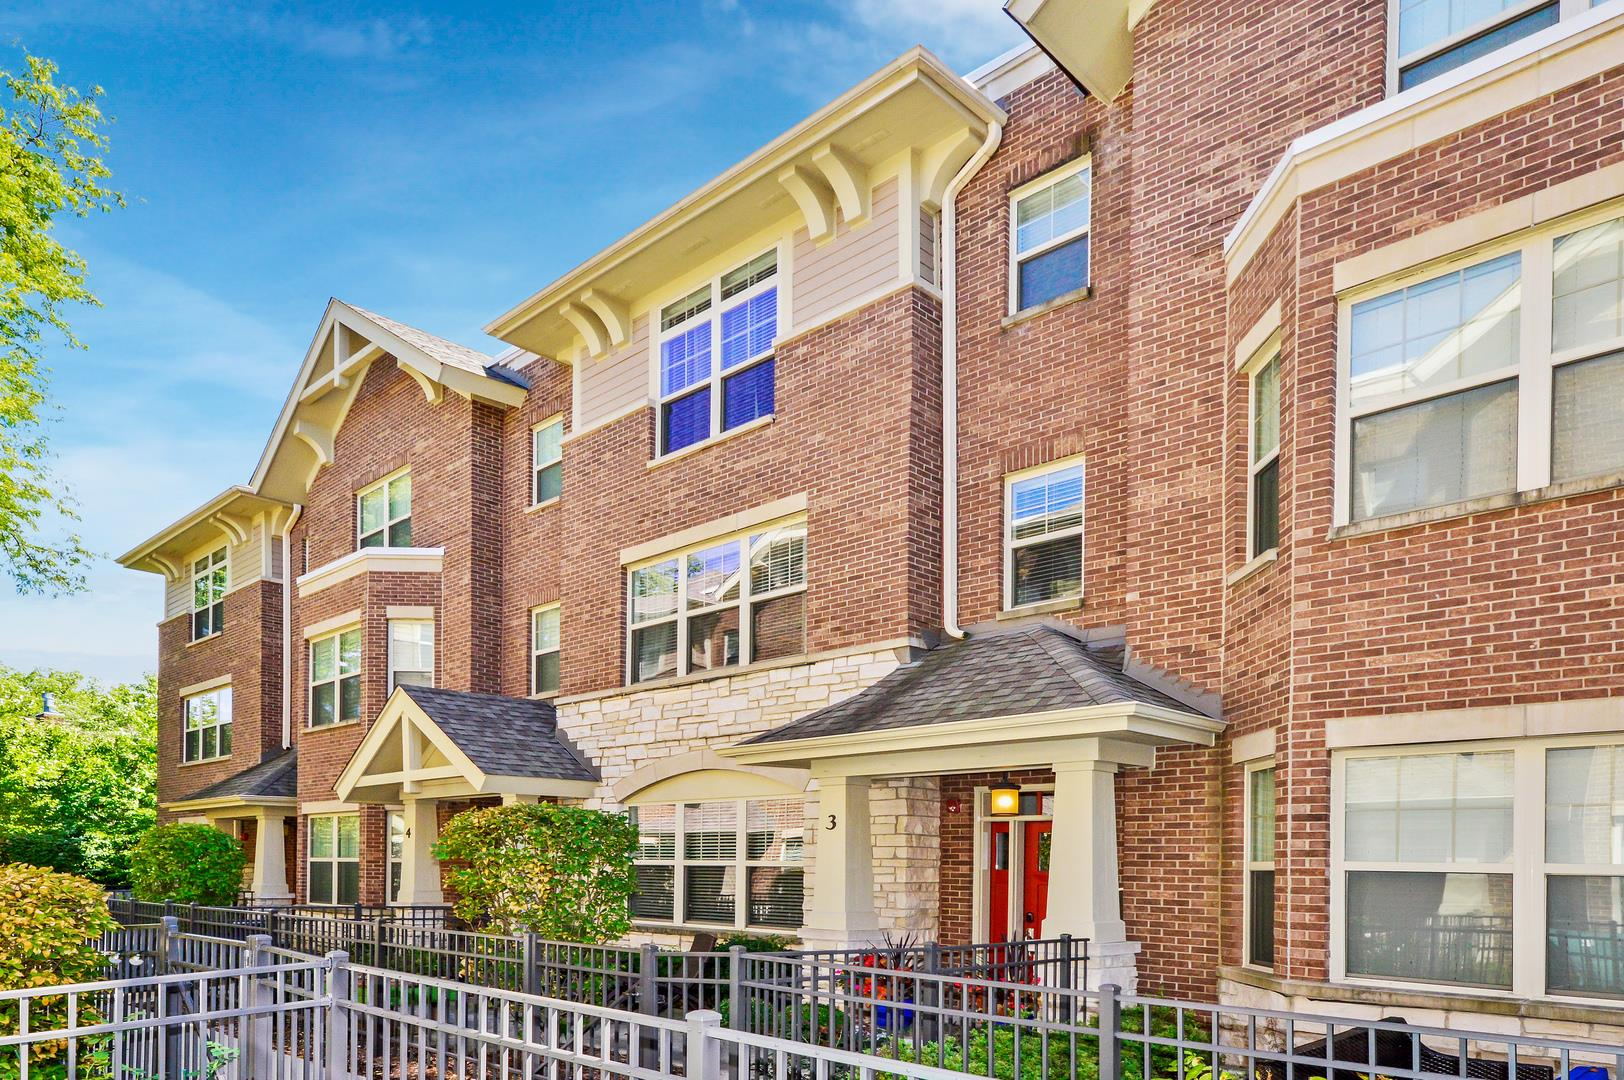 313 S NORTHWEST Highway #3, Park Ridge, IL 60068 - #: 10847270